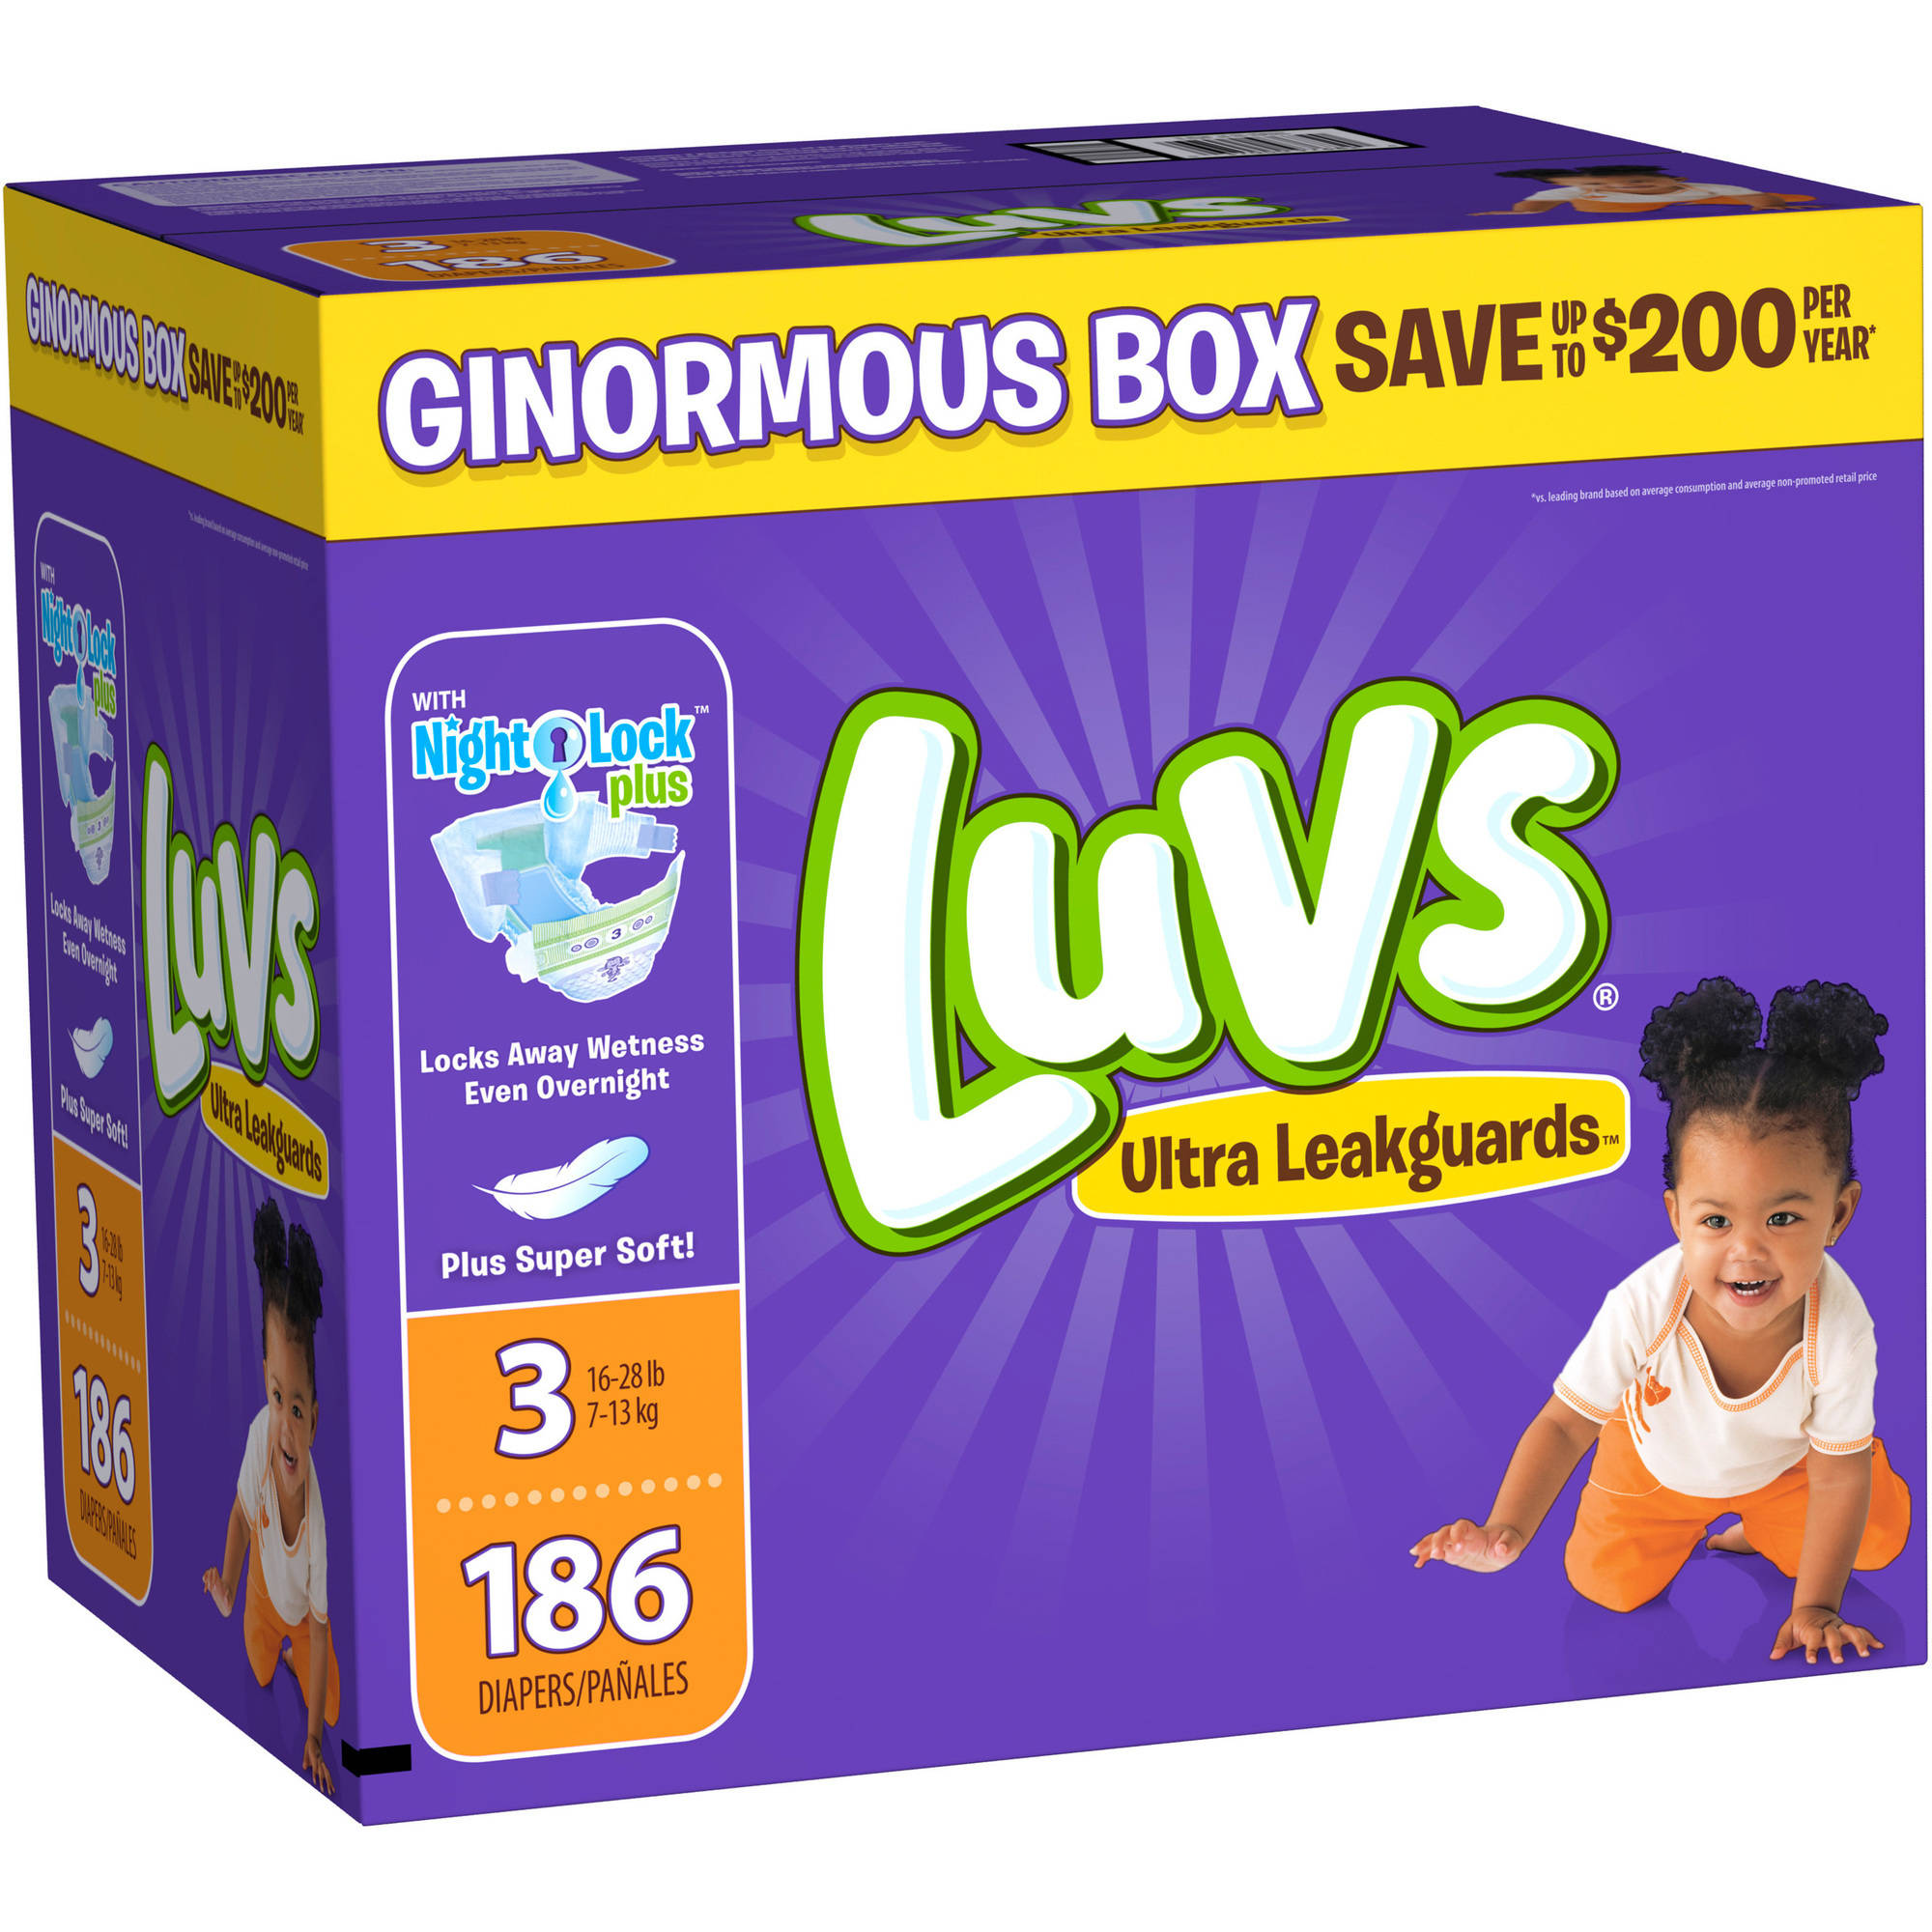 Luvs Ultra Leakguards Diapers, Size 3, 104 Diapers